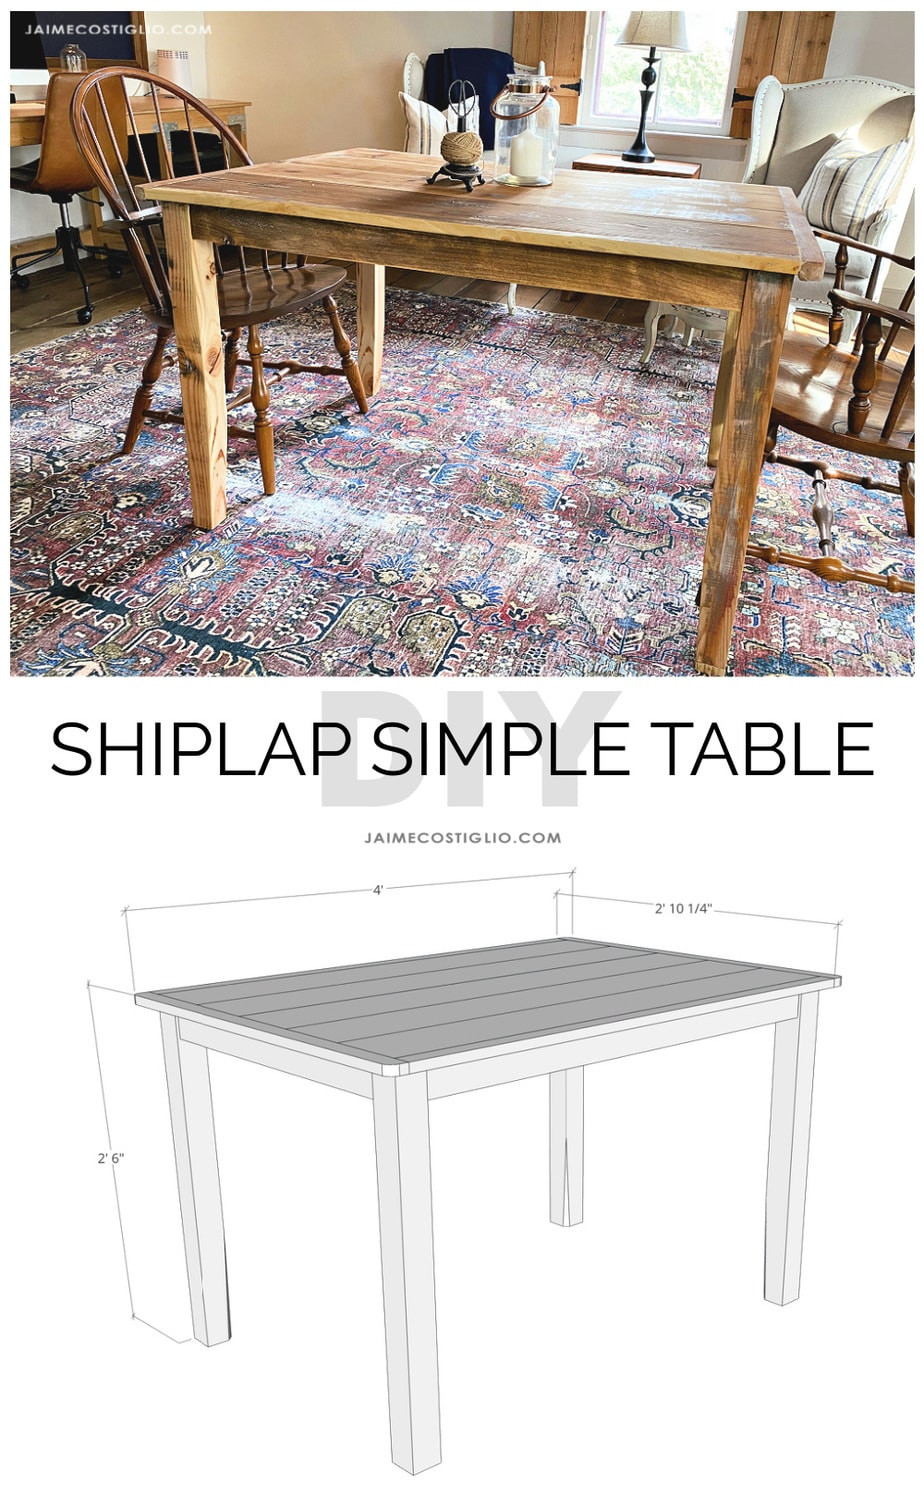 Diy shiplap simple table free plans